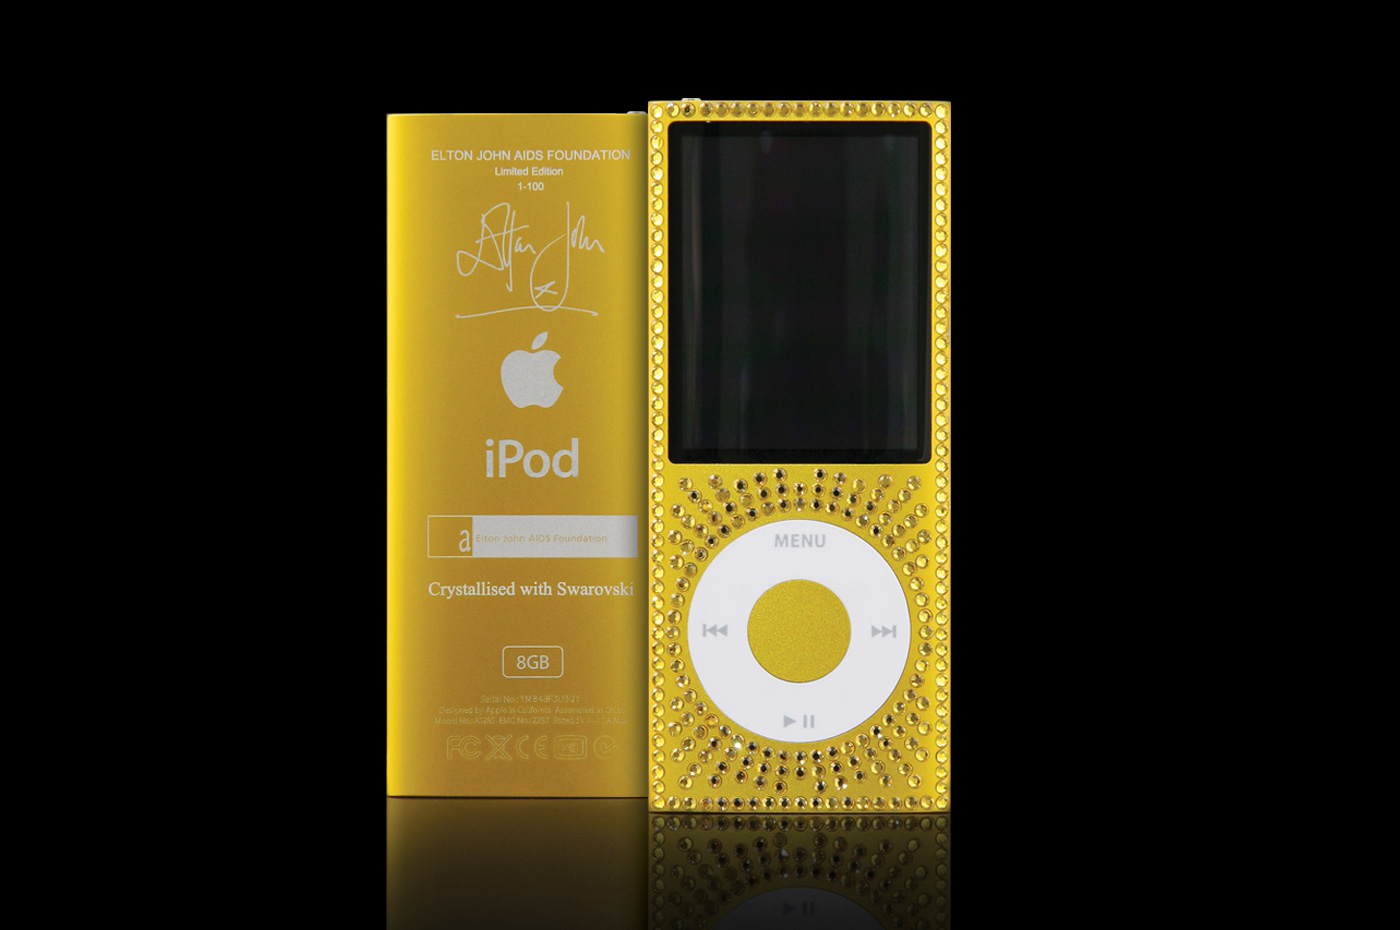 Goldgenie - Customised iPod for Elton John Aids Foundation